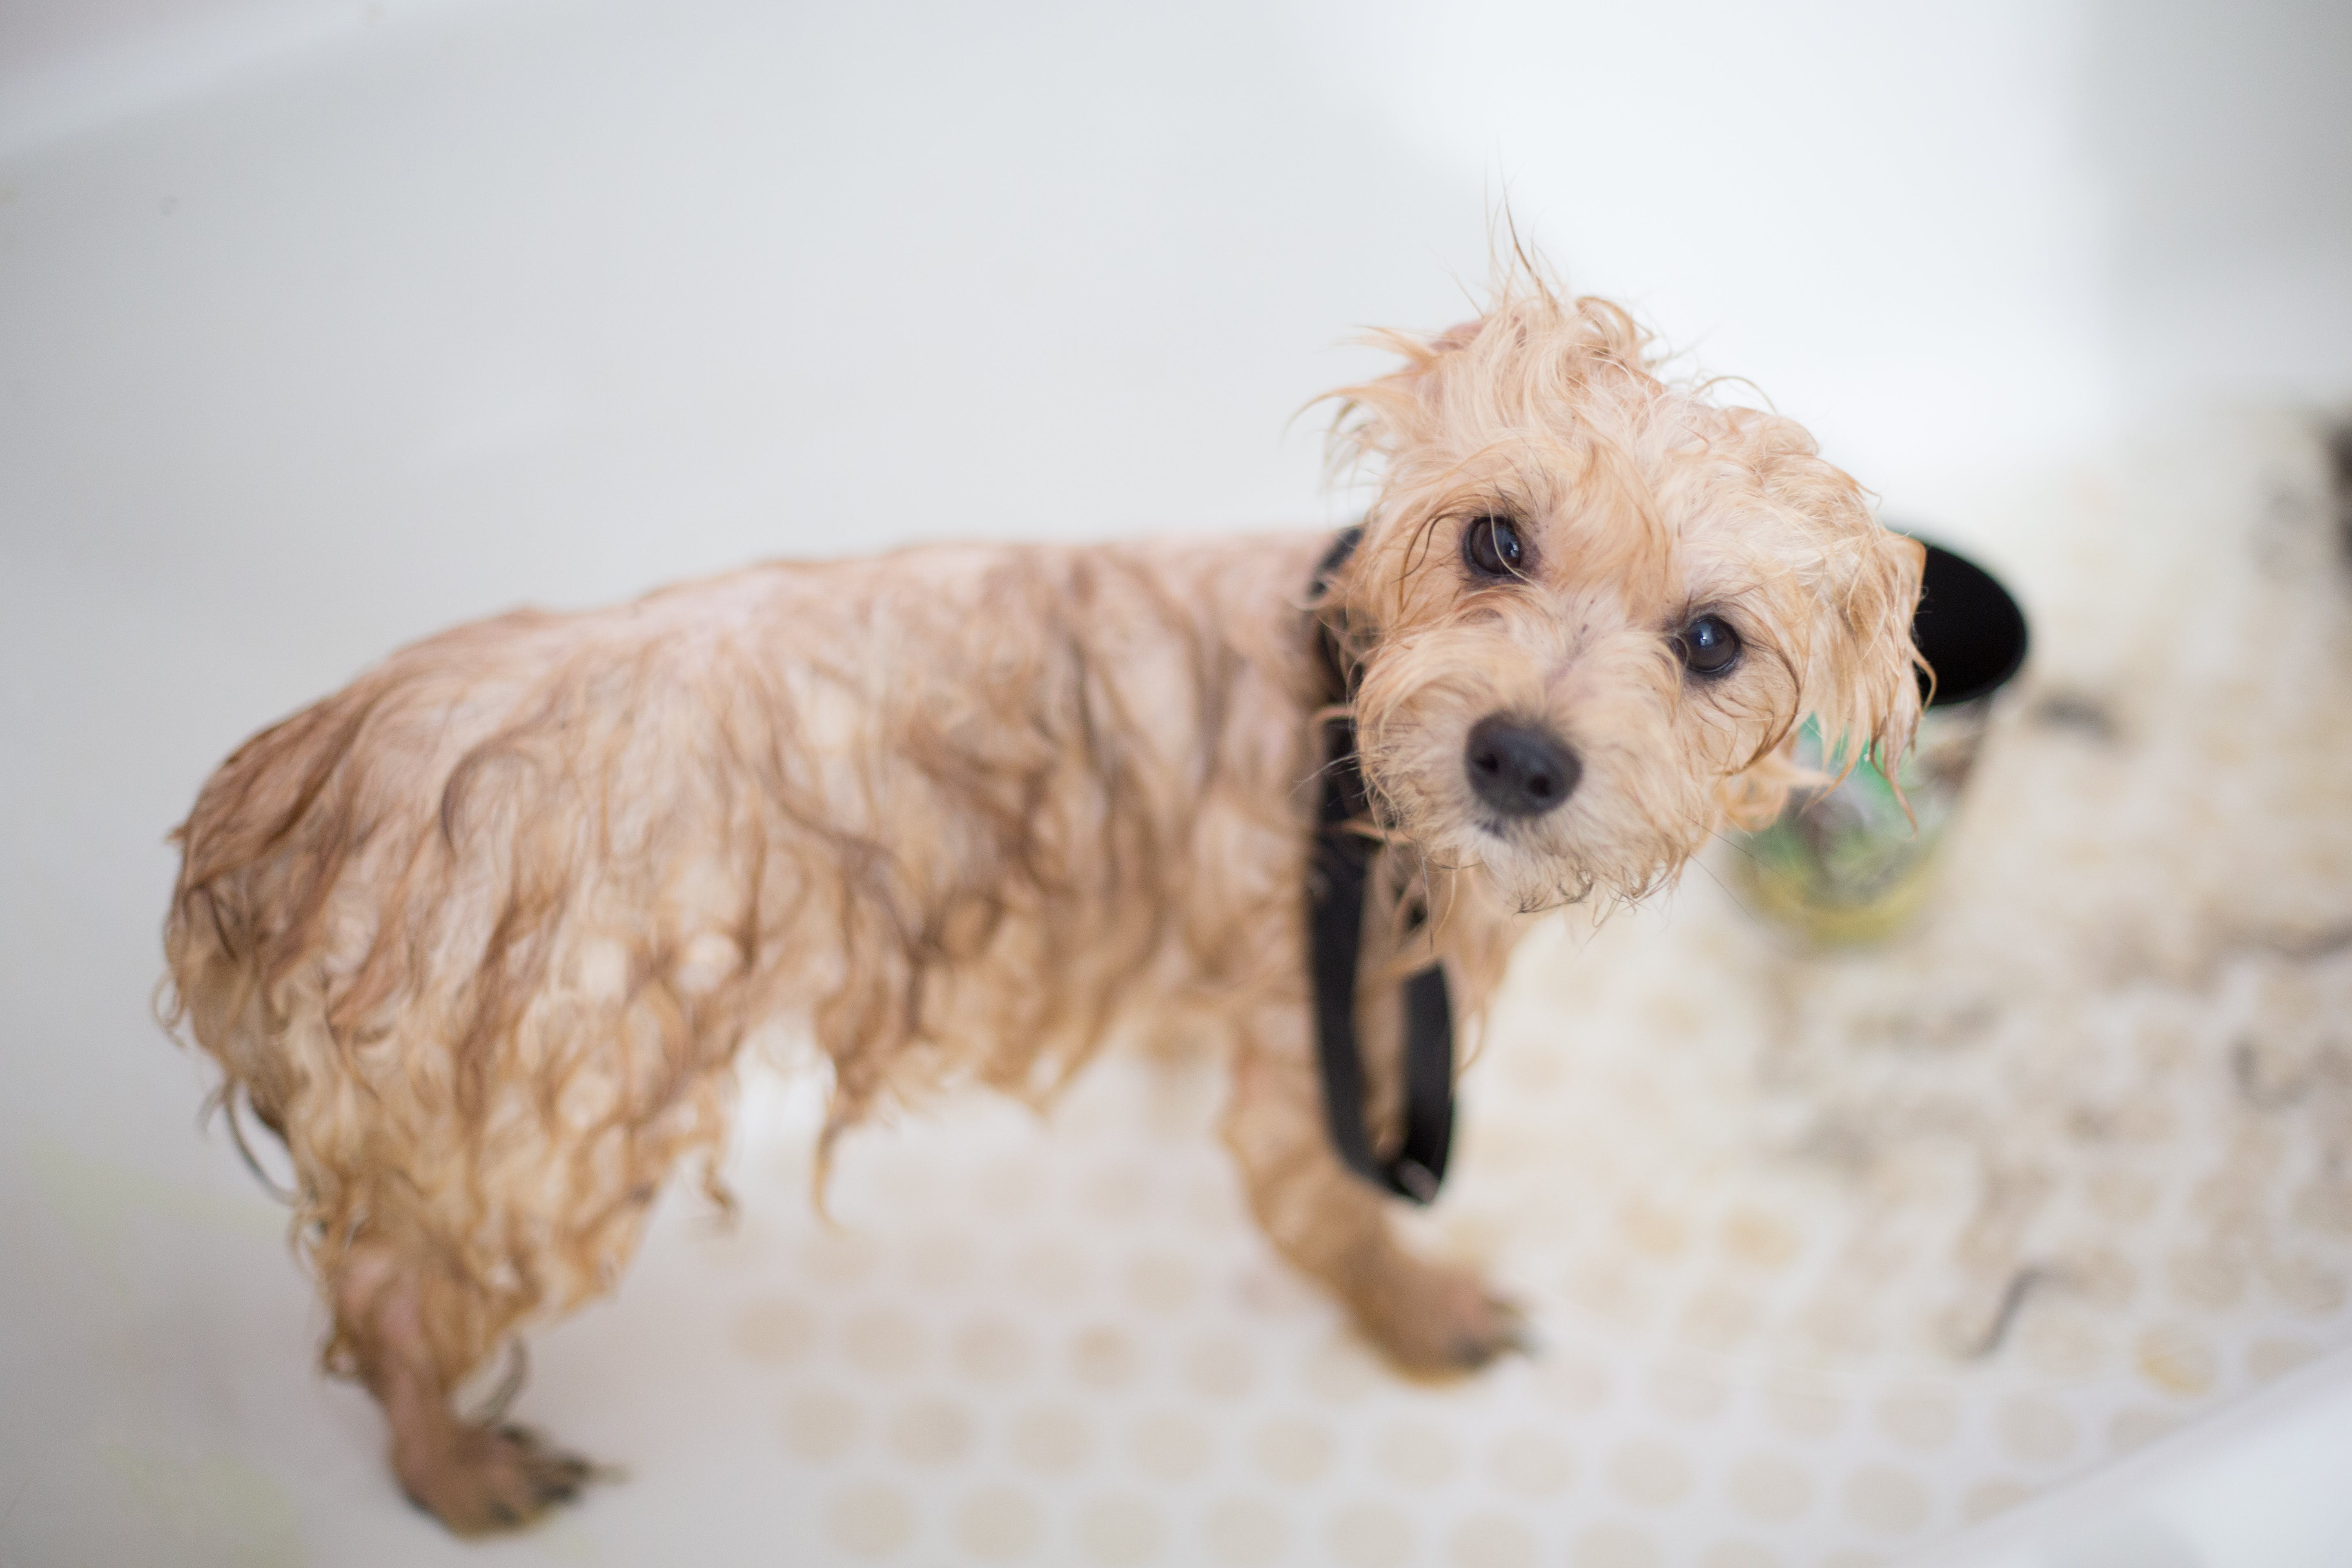 Cream Toy Poodle Puppy in Bathtub